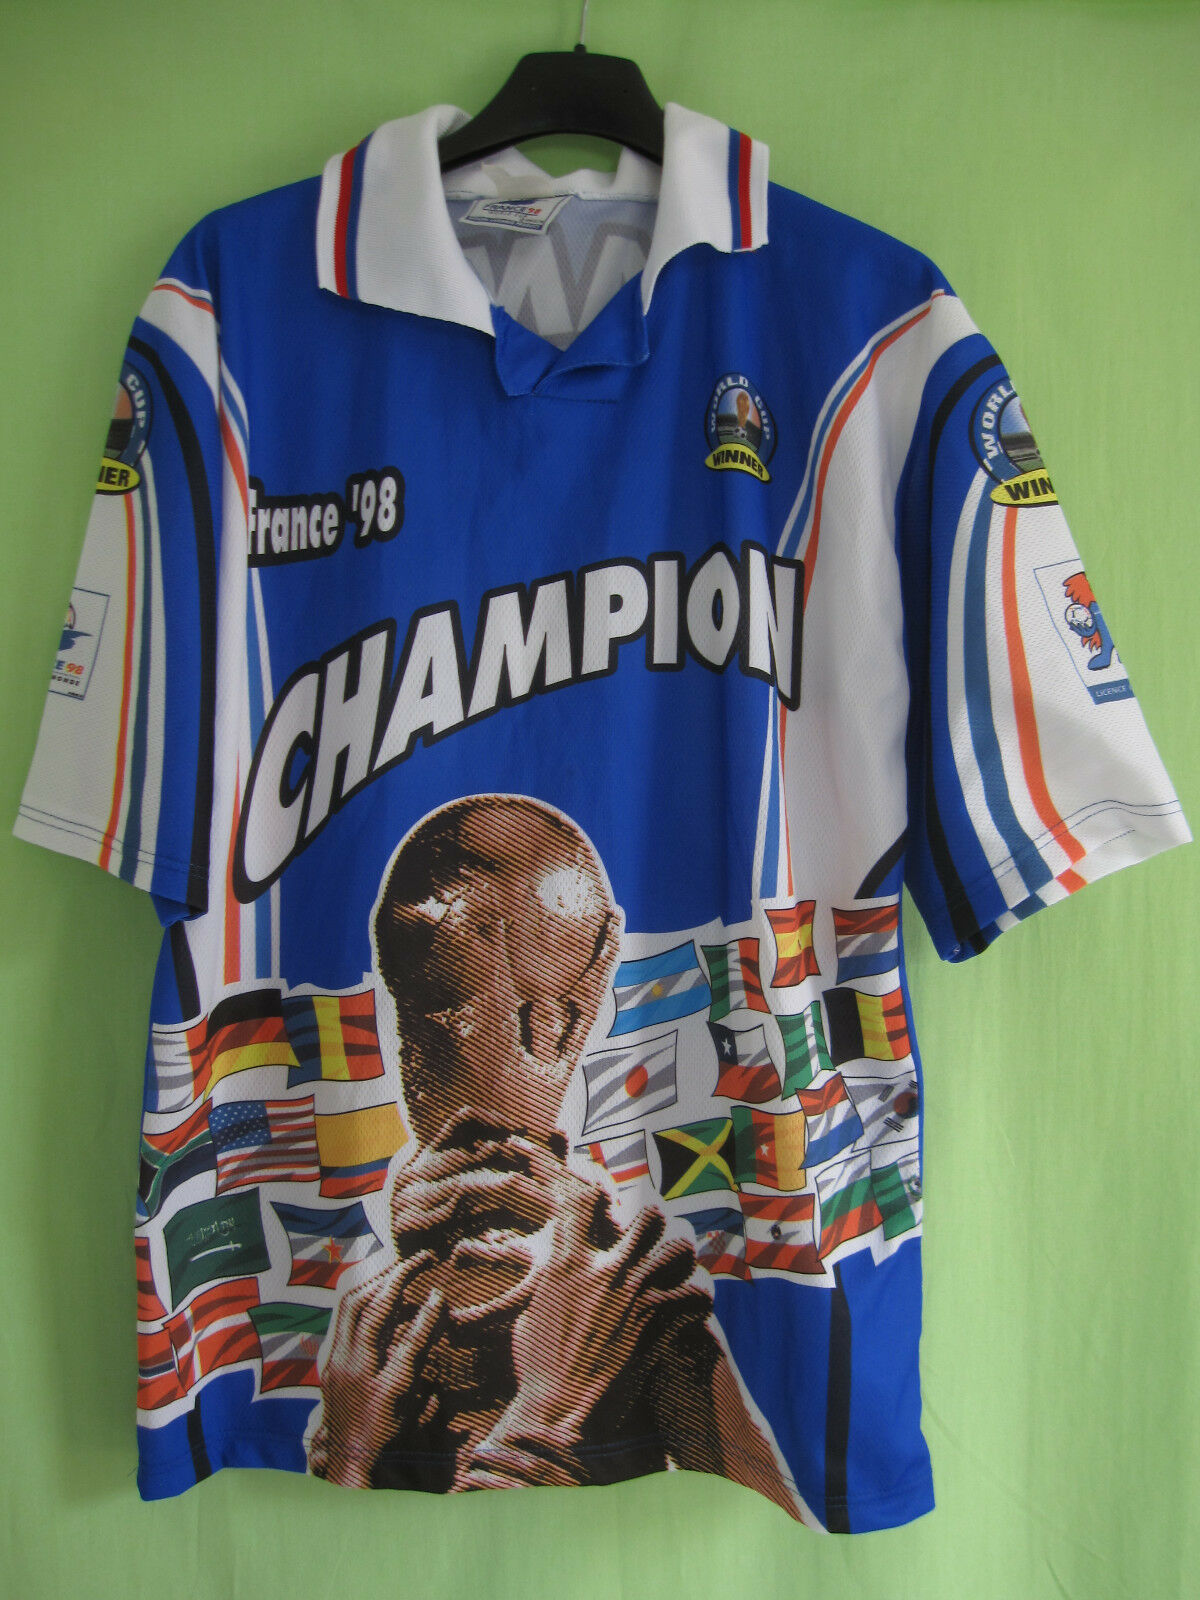 Maillot Equipe de France 98 Footix Champion Vintage Jersey World Cup - S